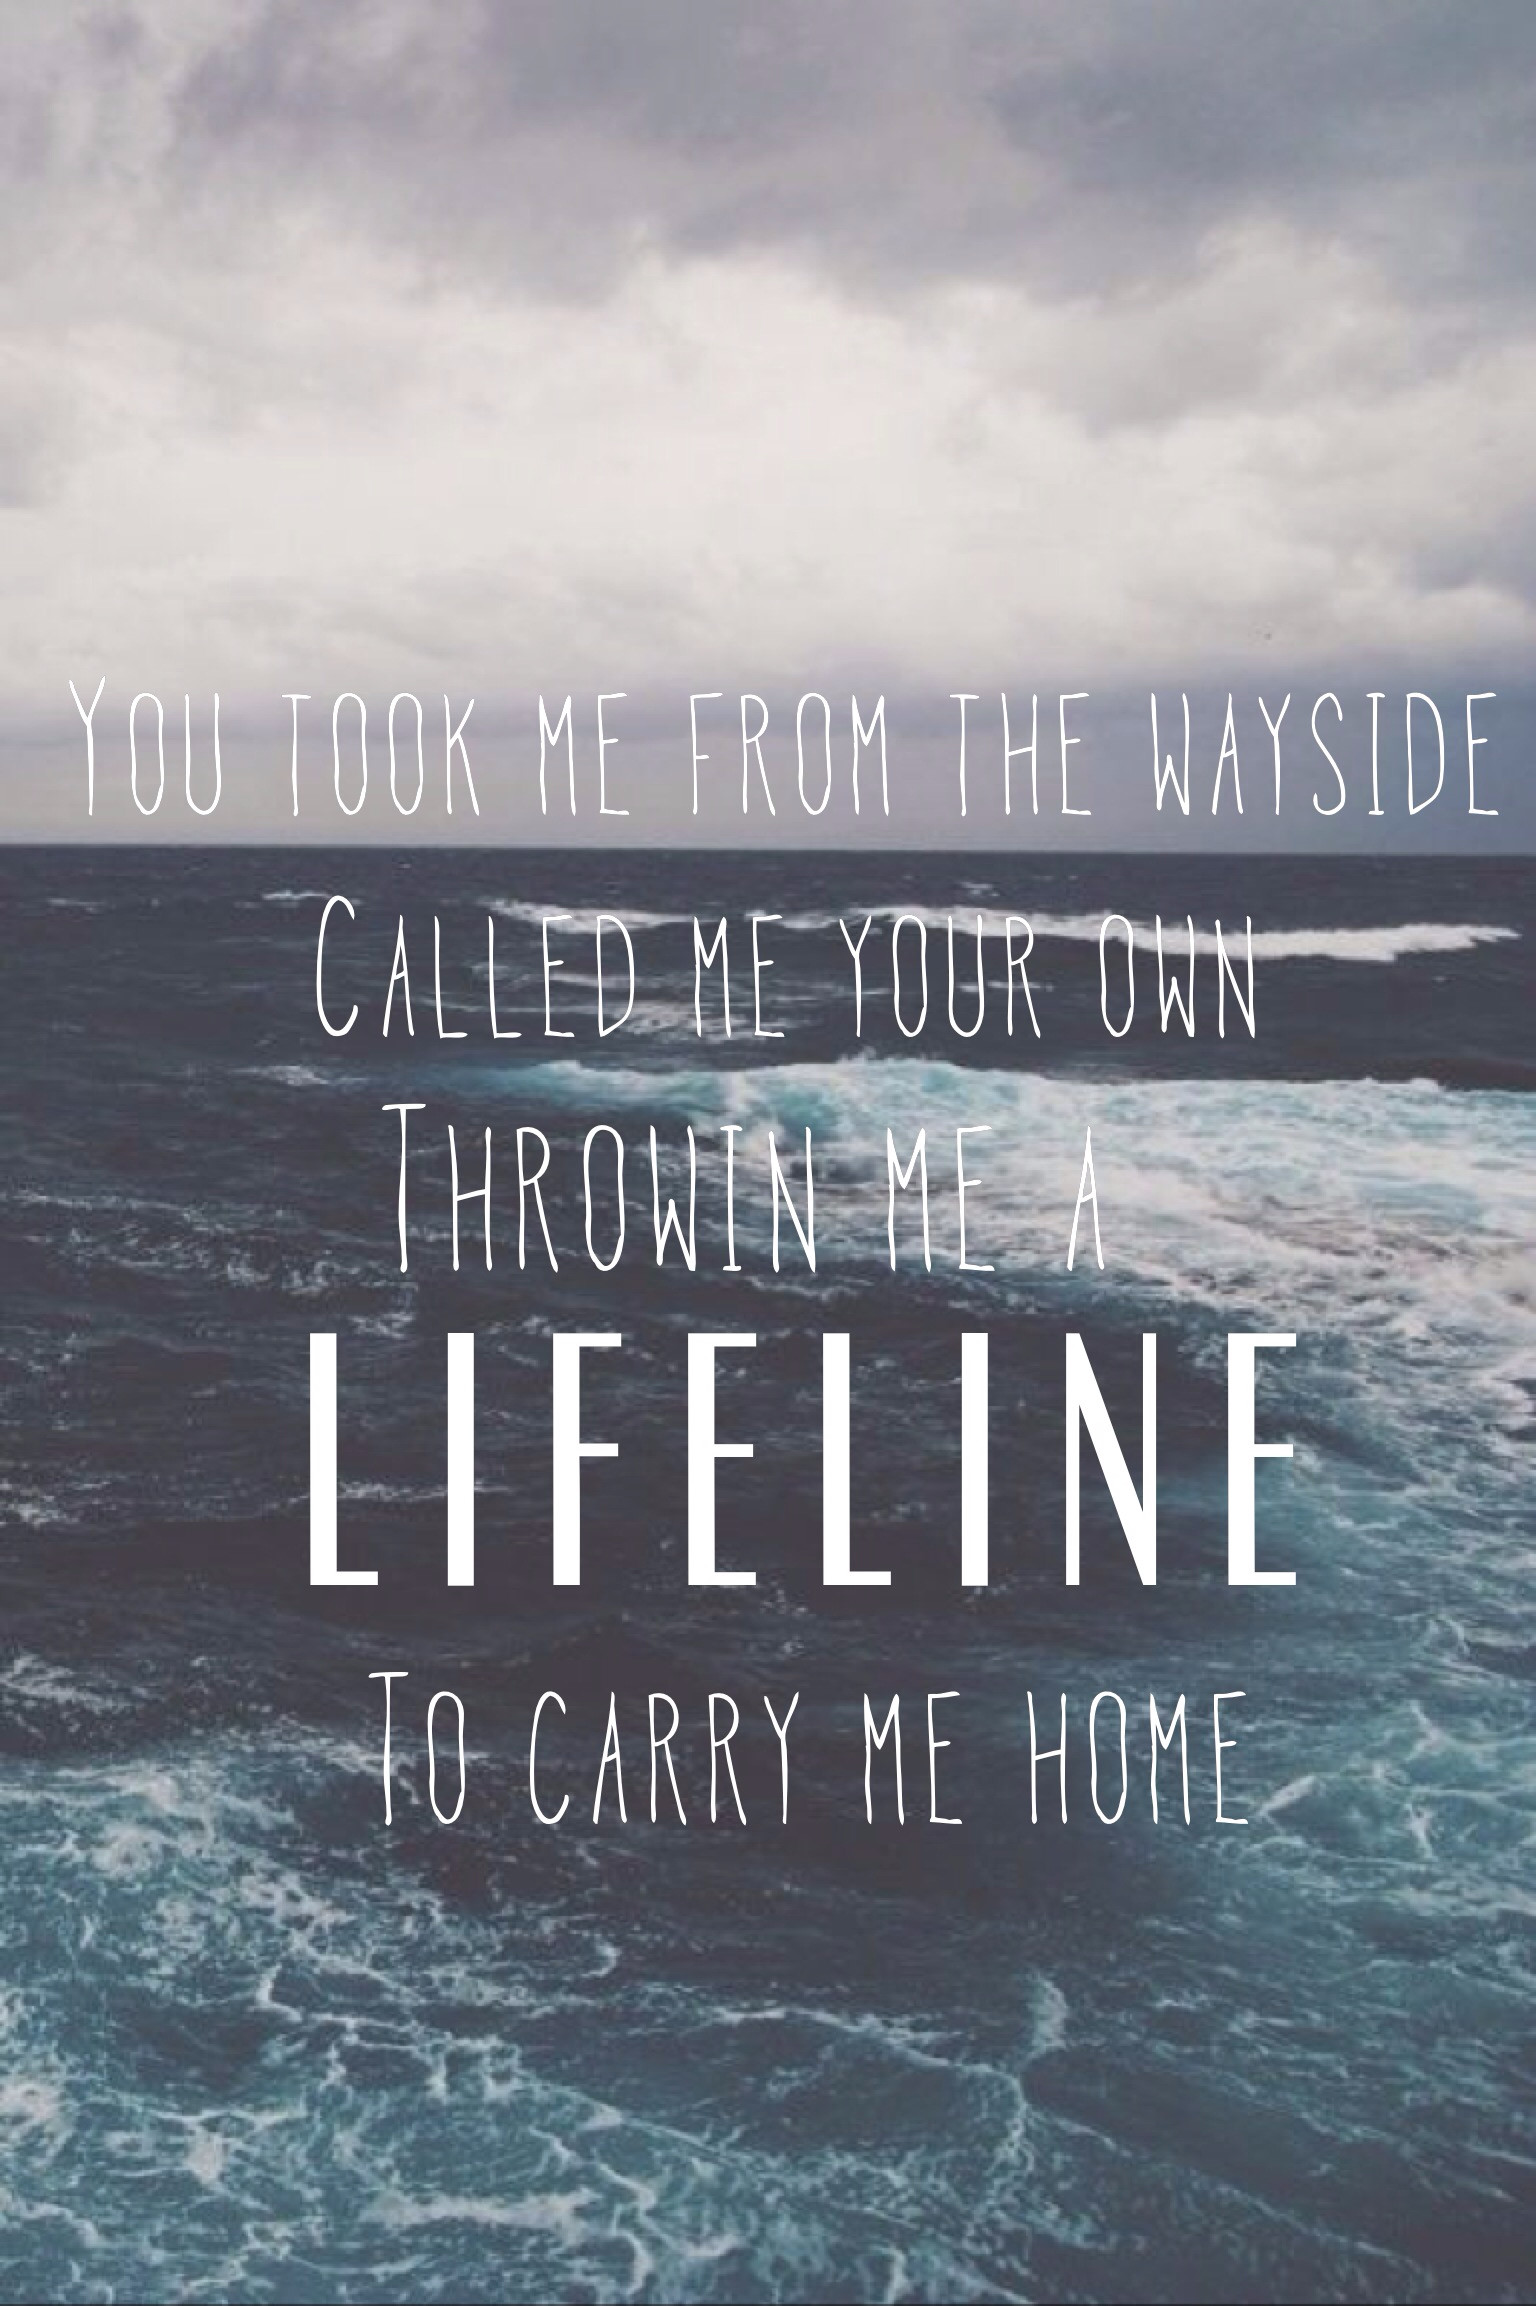 Lifeline Quotes Wallpaper Hillsong Young Wallpapers 83 Images